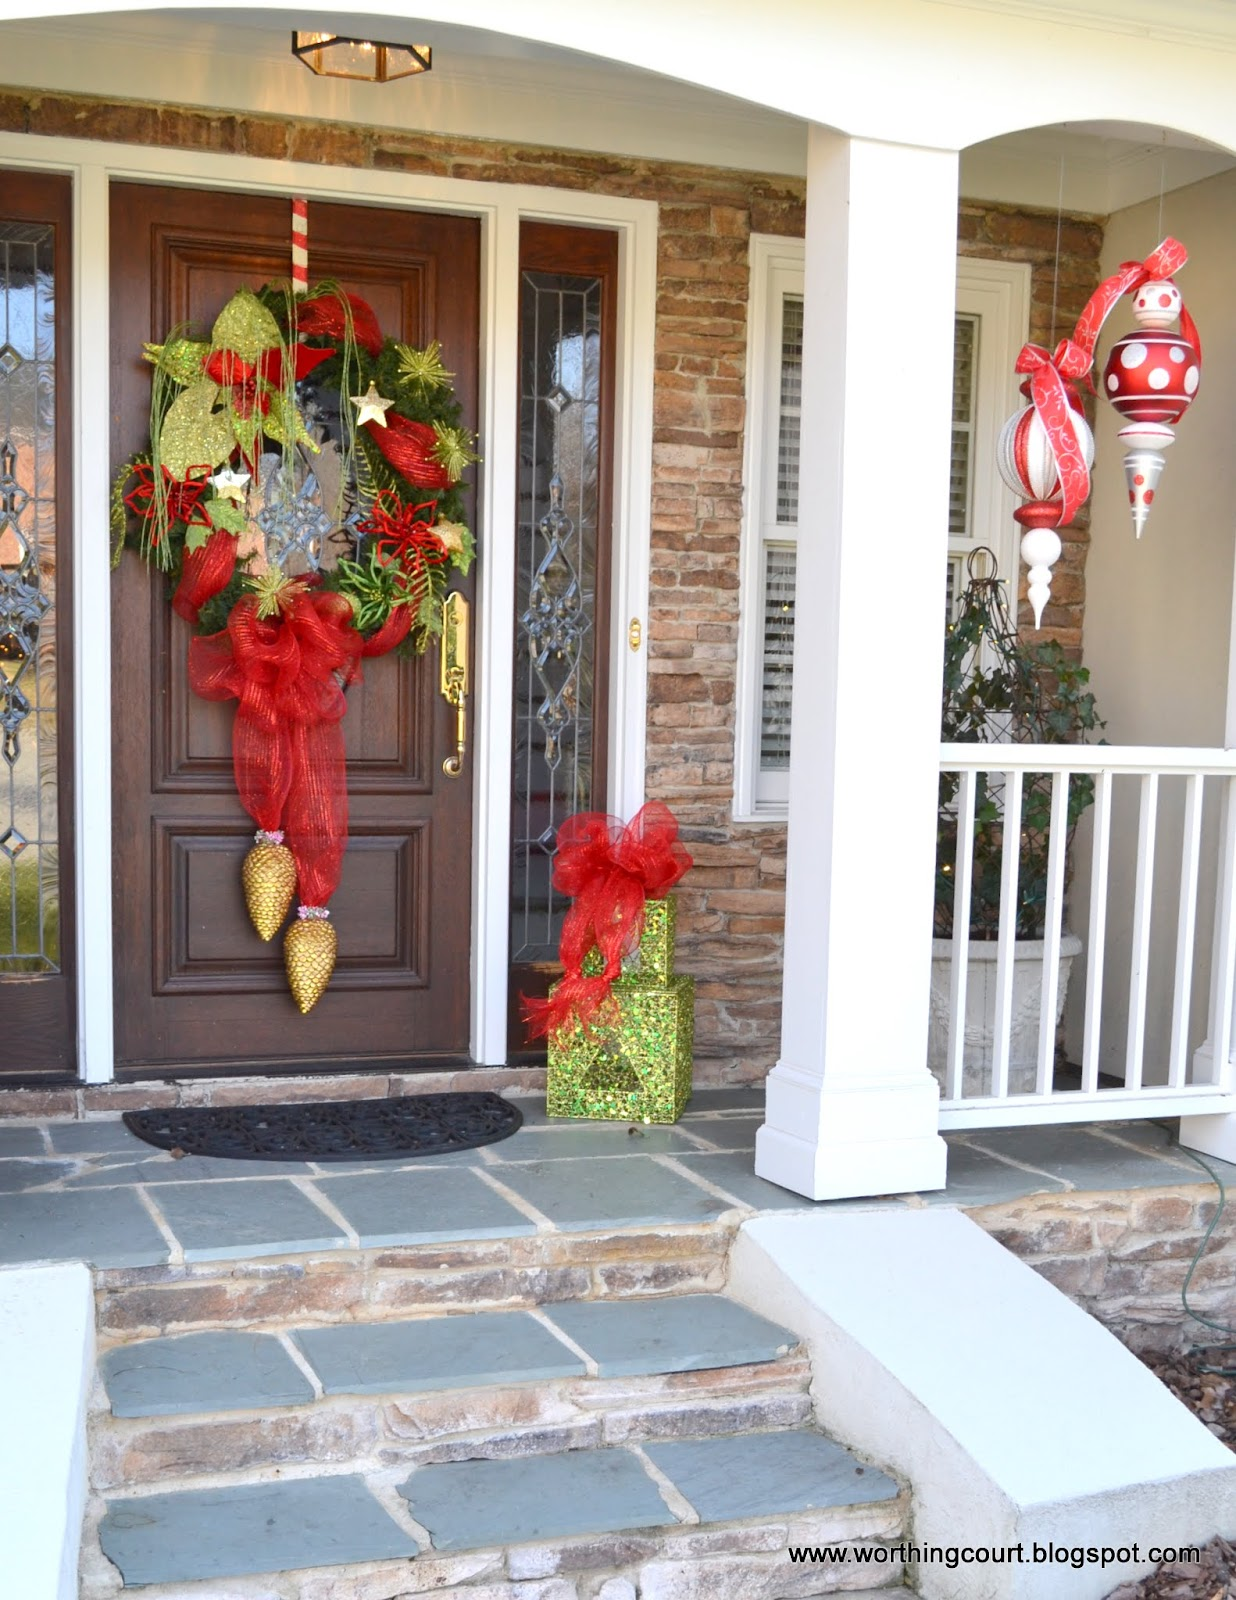 Christmas tour at nancy 39 s worthing court - Christmas decorating exterior house ...